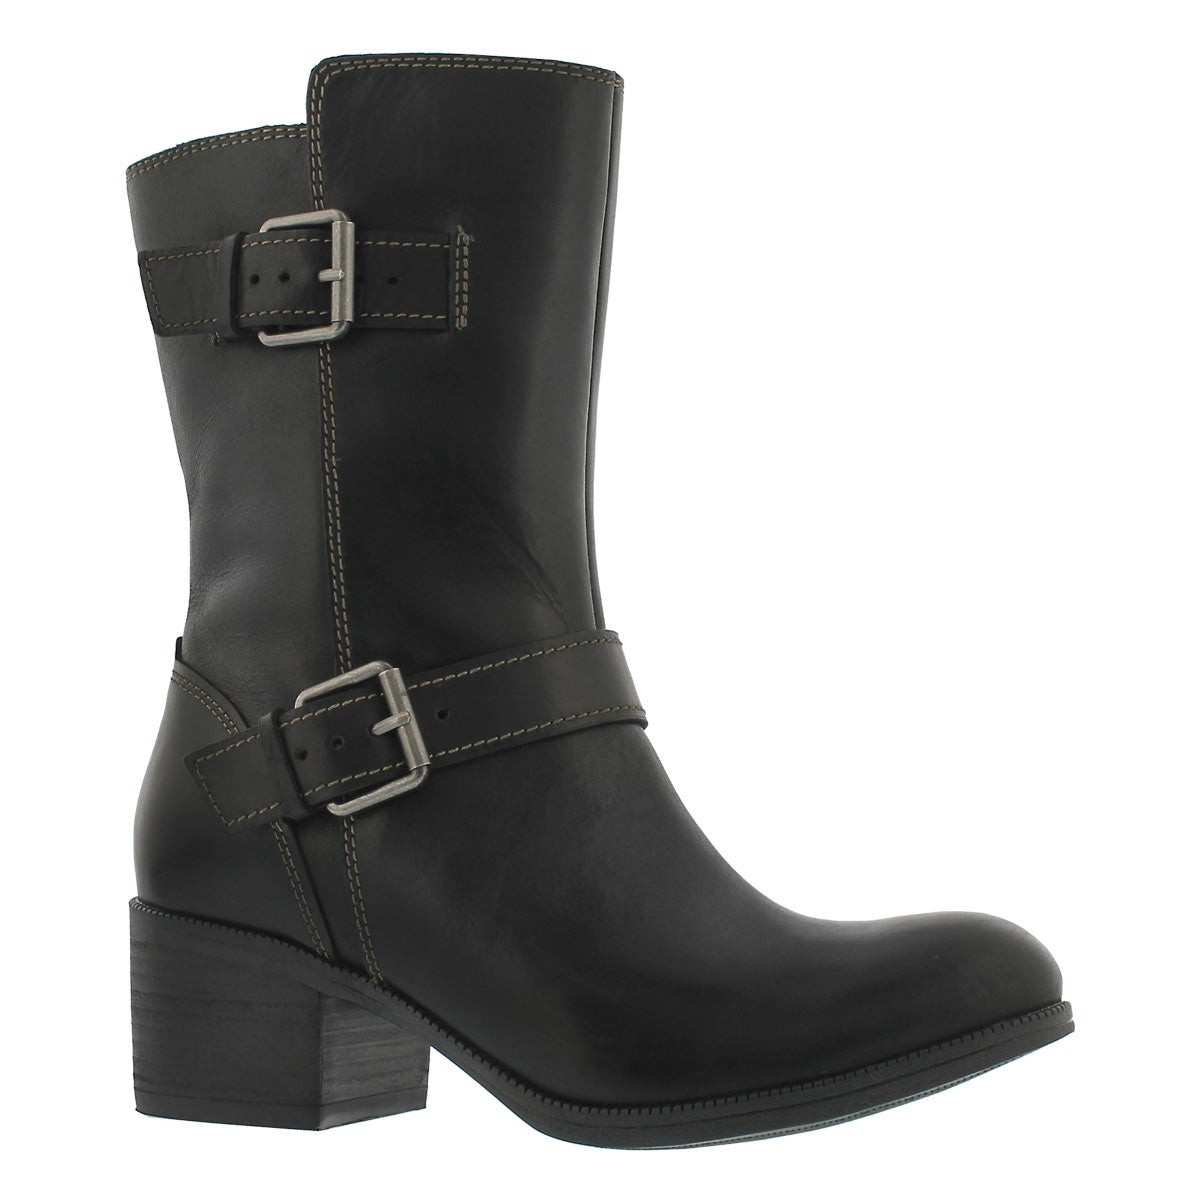 Women's MAYPEARL OASIS black mid-calf boots